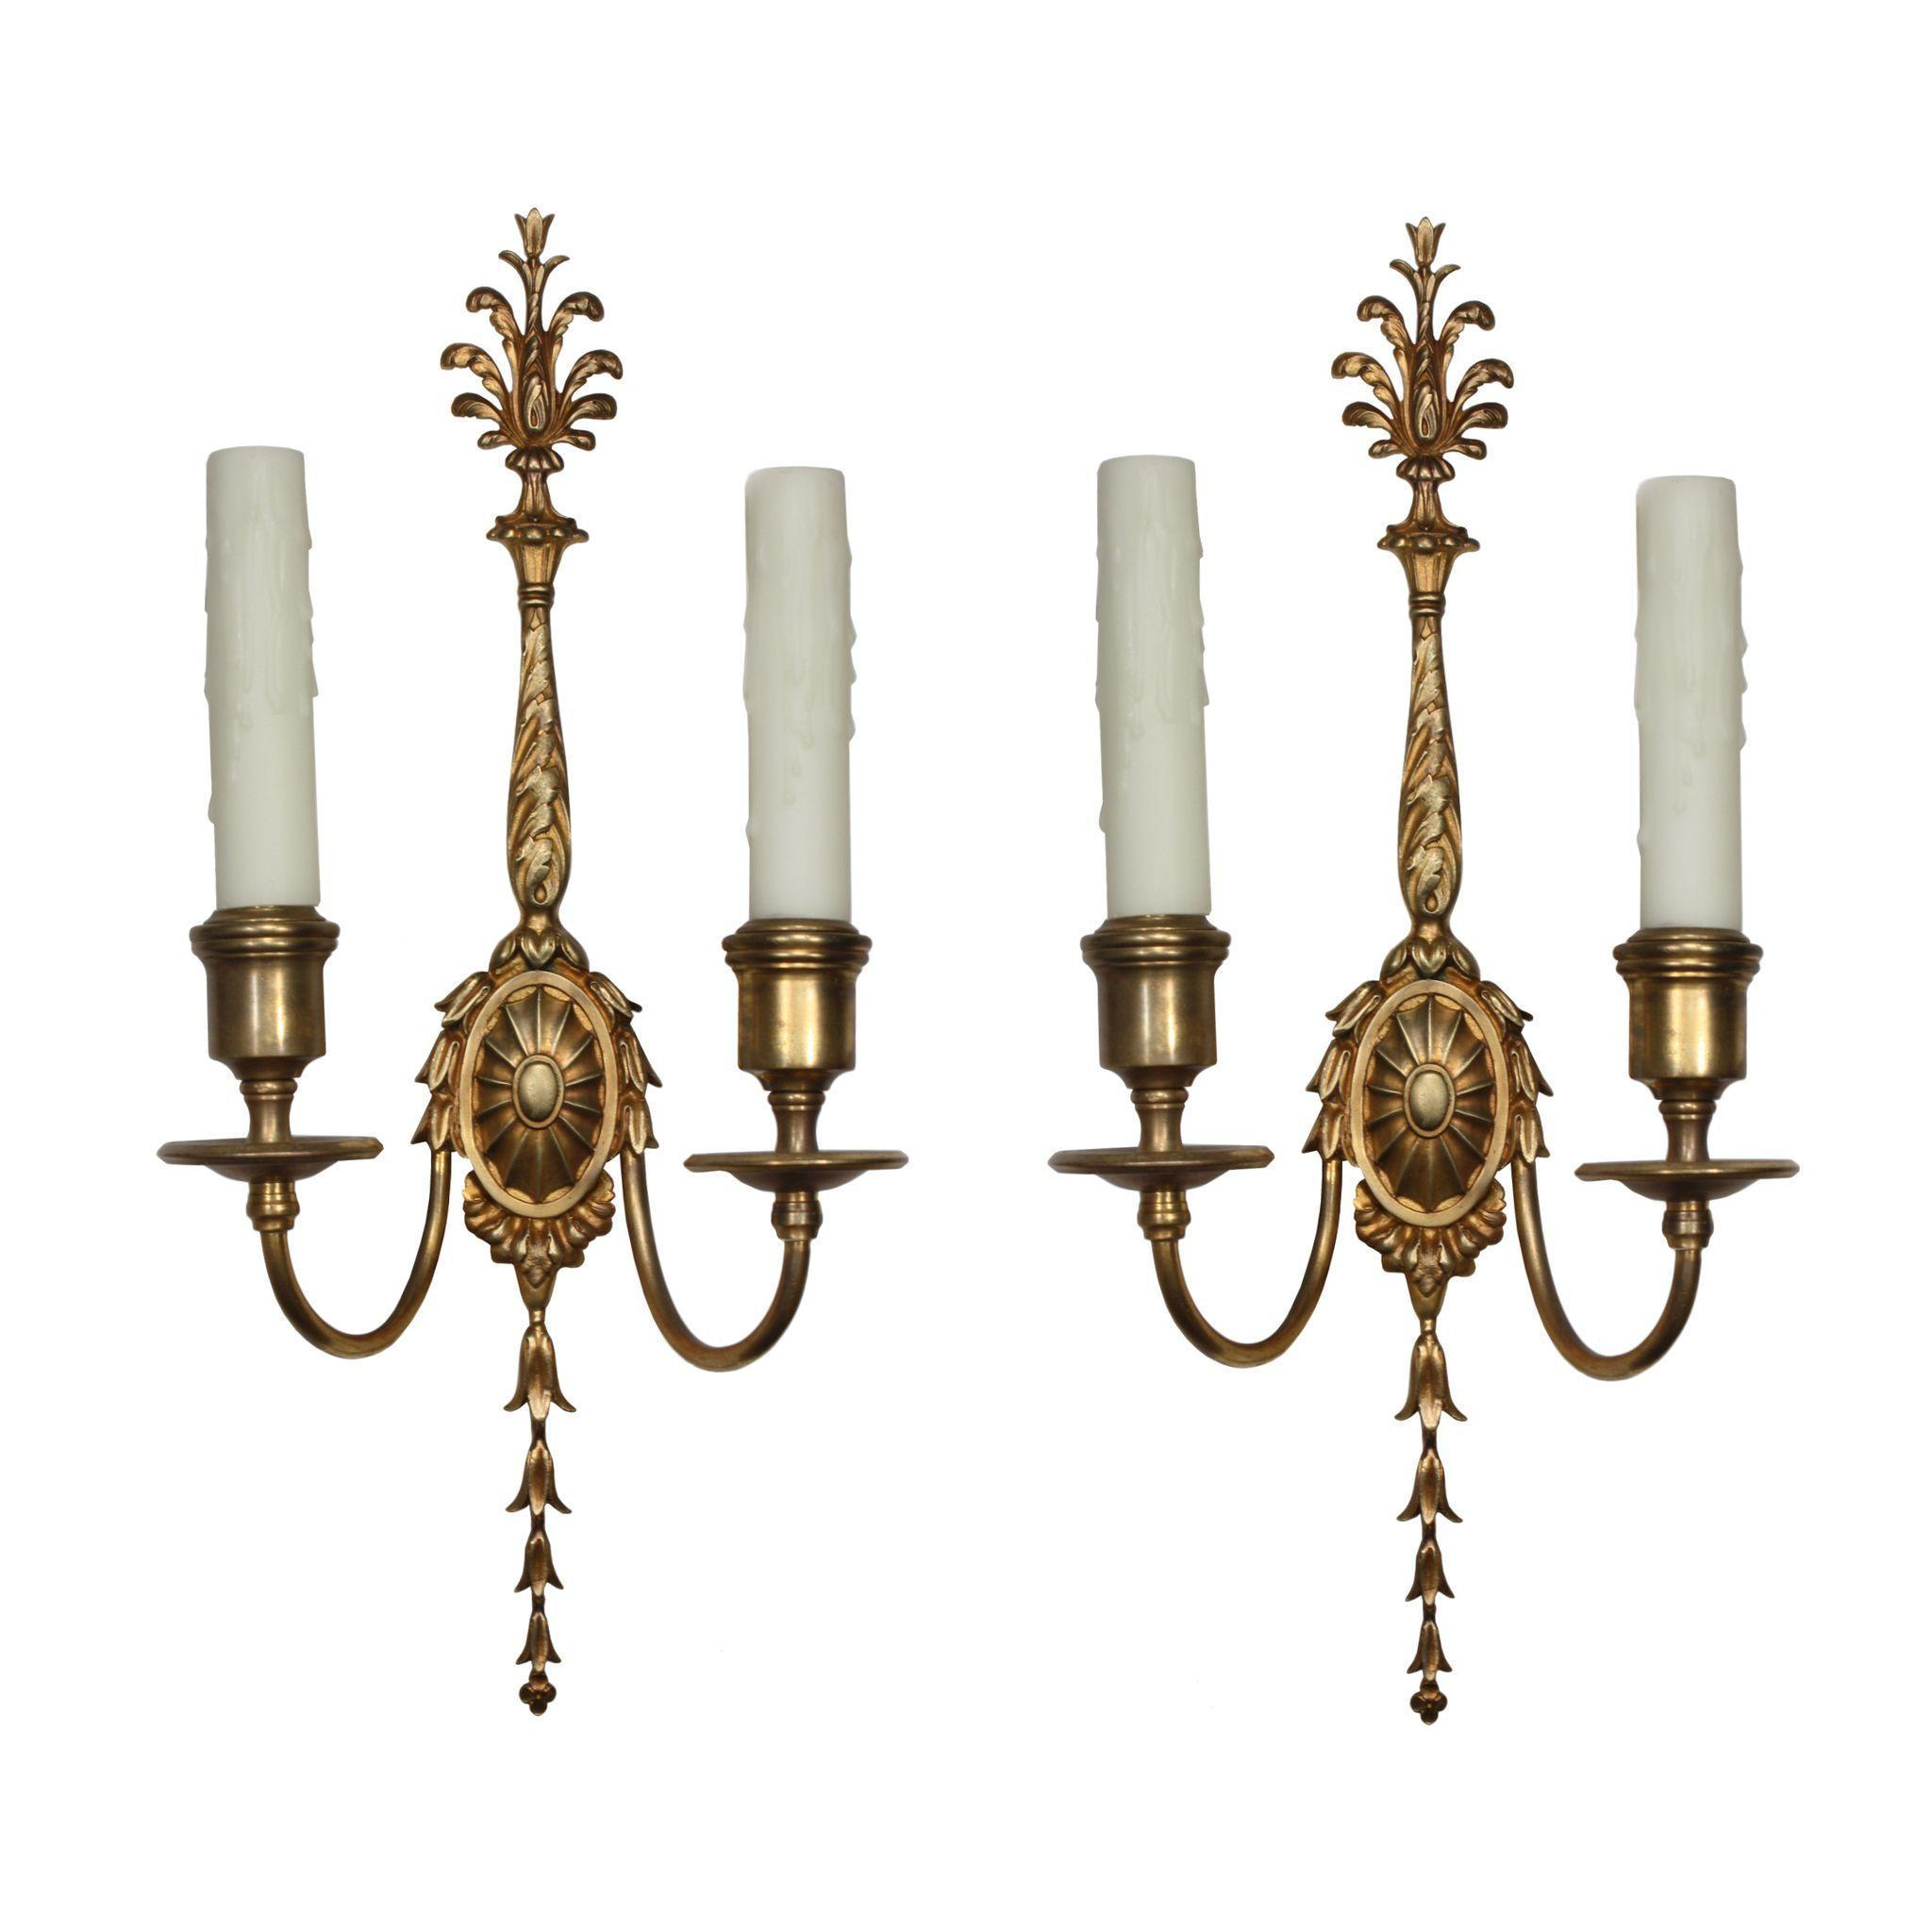 Antique Georgian Wall Sconces : Magnificent Pair of Antique Georgian Sconces, Signed E. F. Caldwell from preservationstation on ...